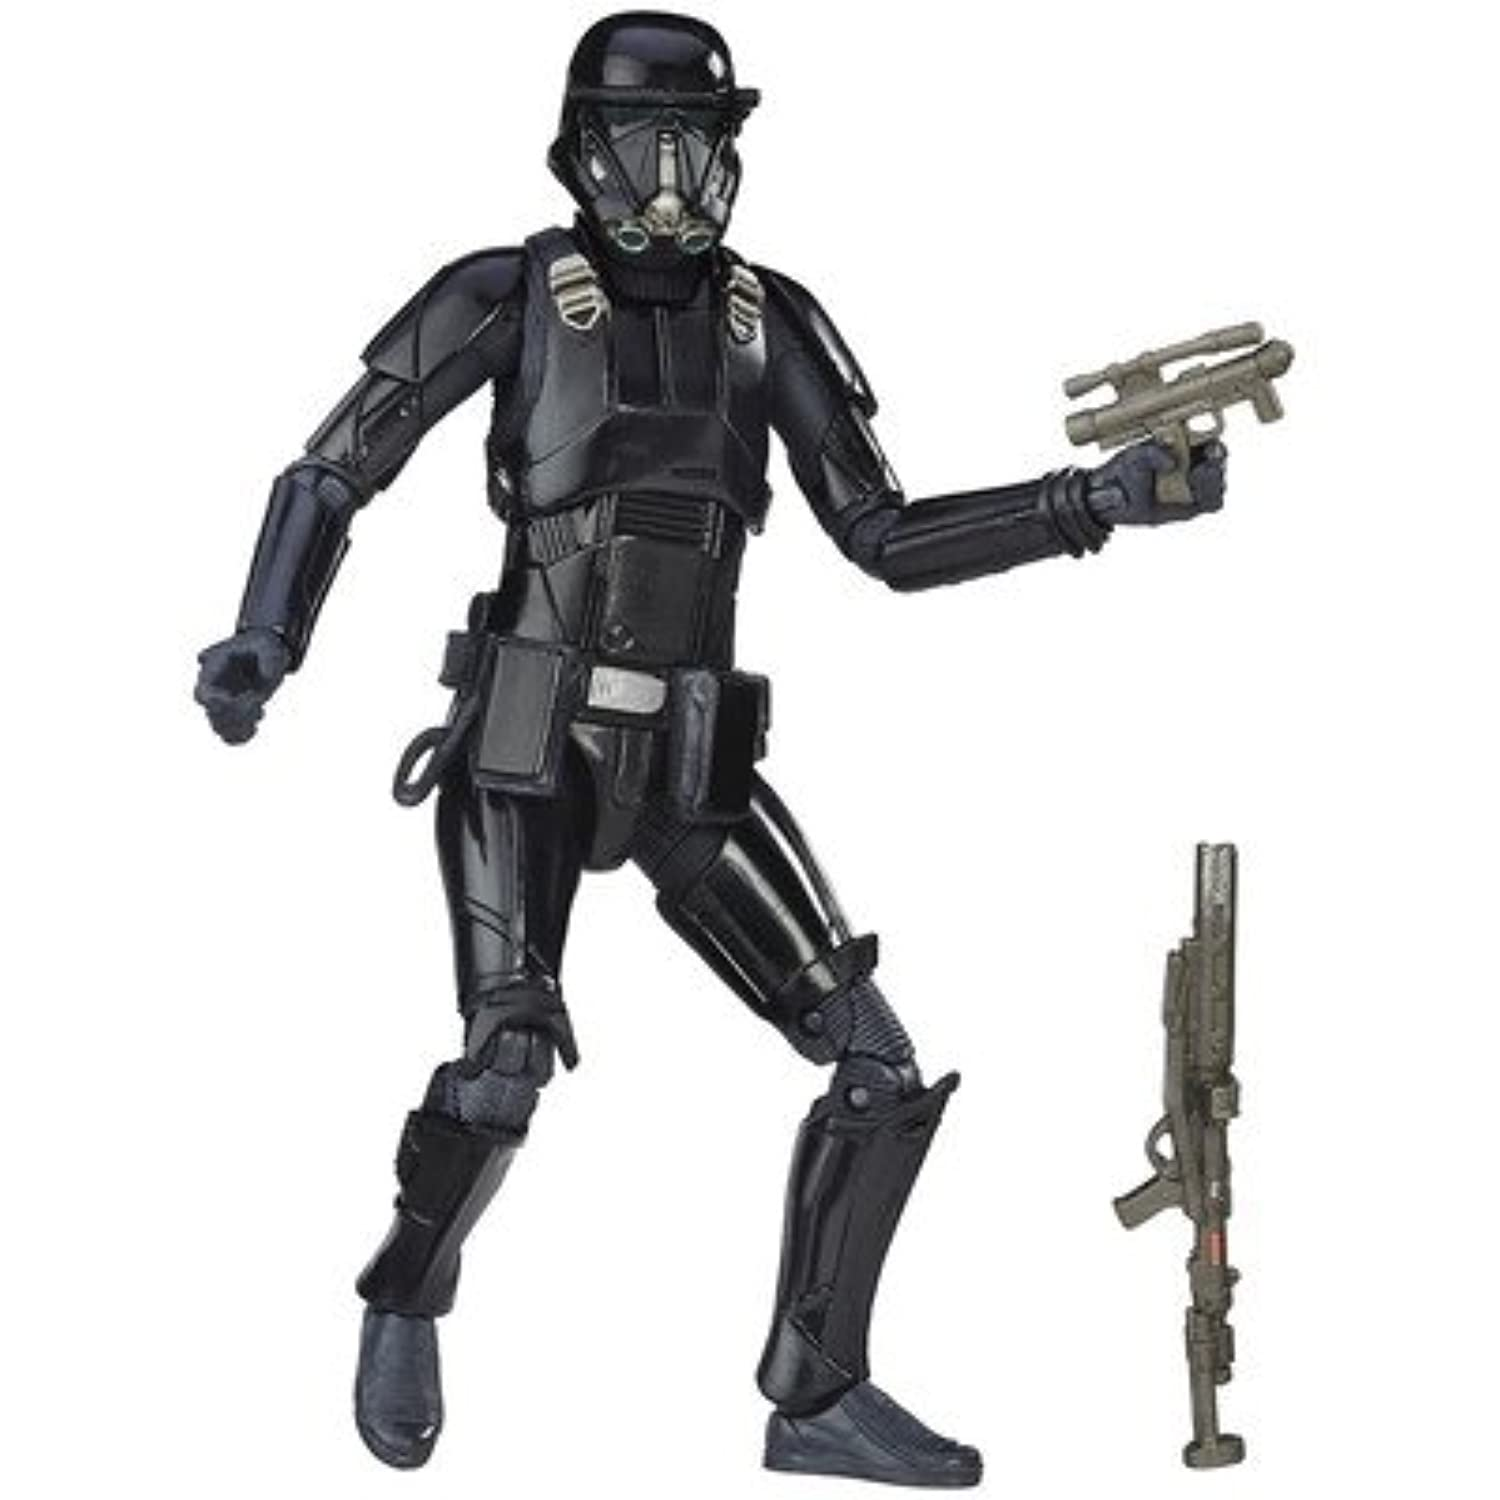 Star Wars(スターウォーズ) Star Wars Rogue One Imperial Death Trooper The Black Series Action Figure おもちゃ One Size【並行輸入】